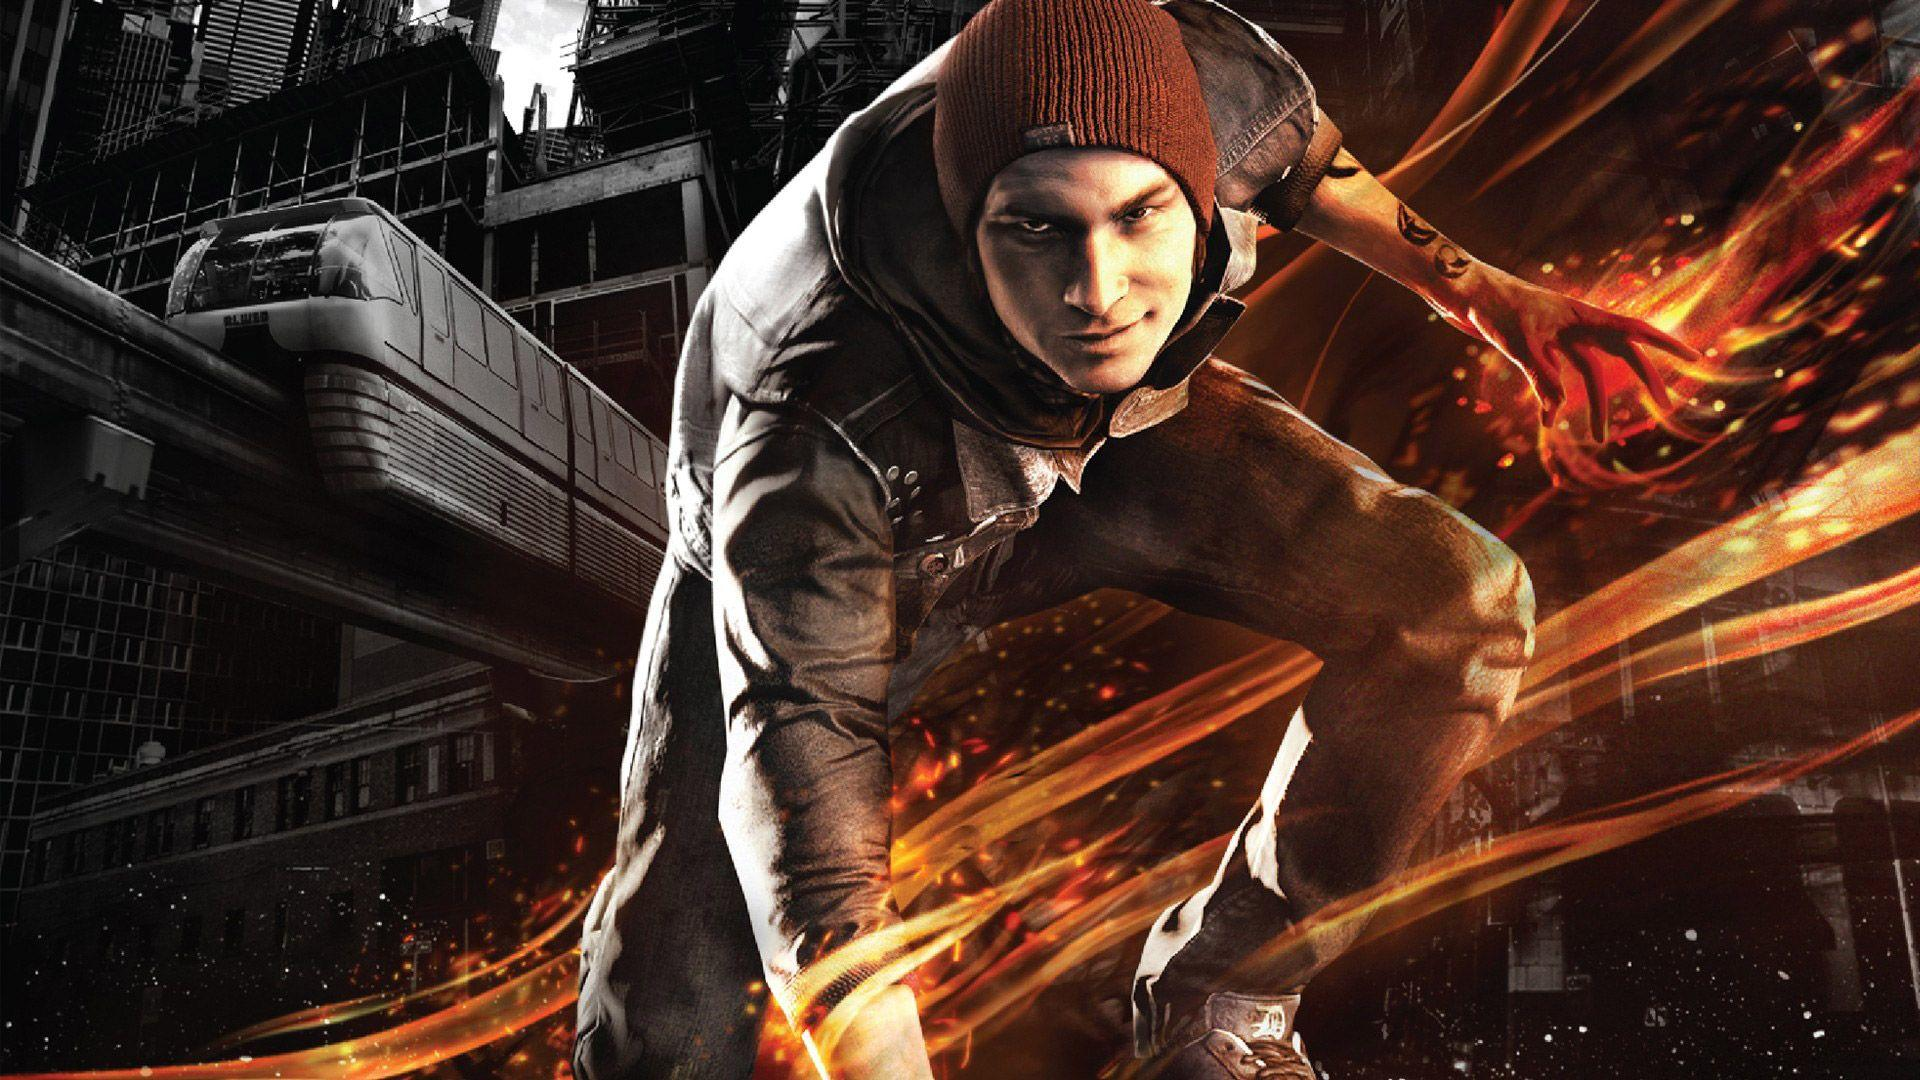 Infamous Second Son HD Wallpaper, Backgrounds Image